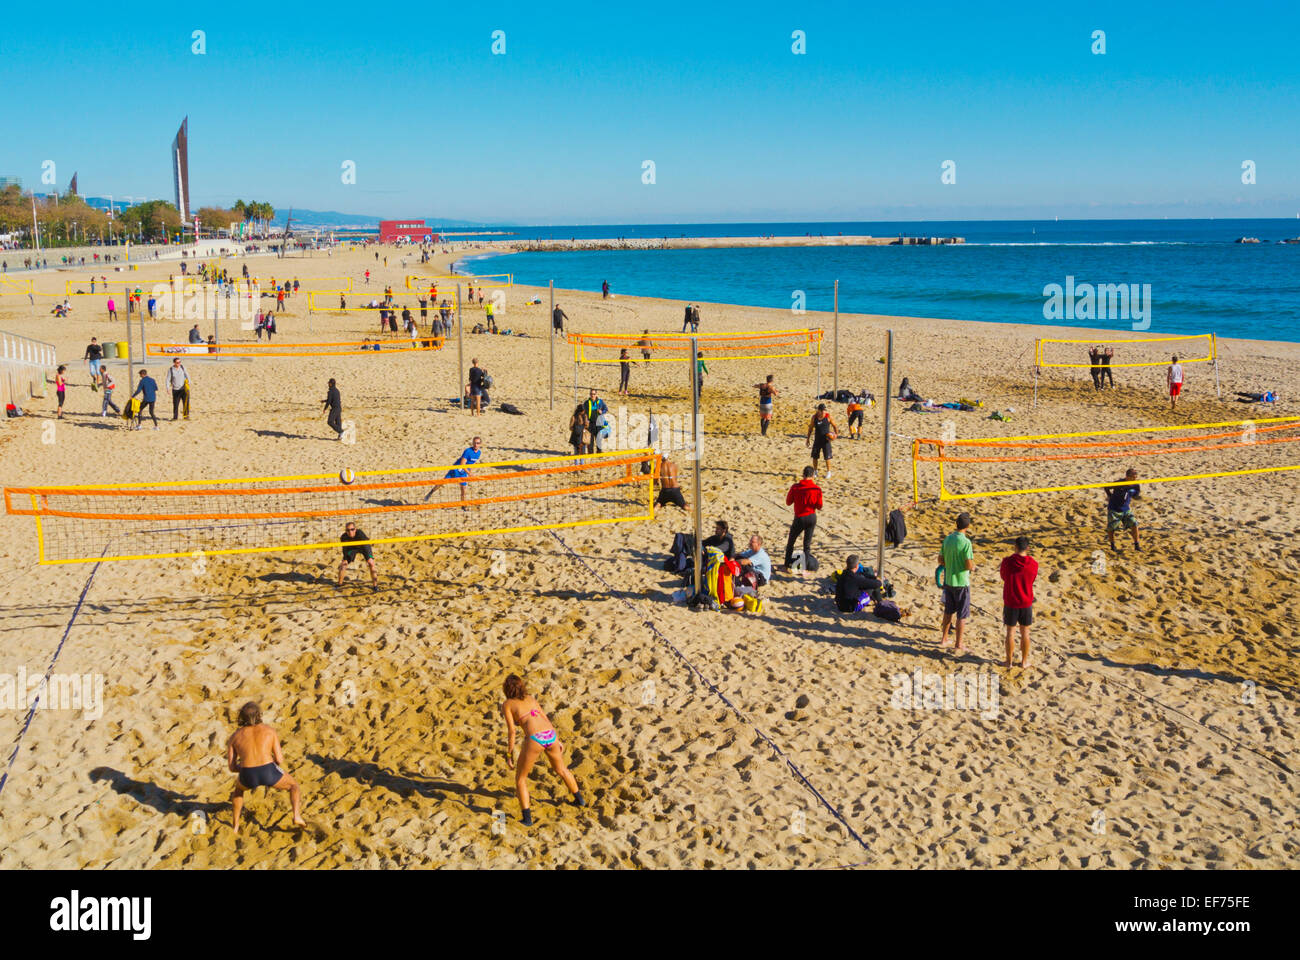 Beach-volley, plage Platja Nova Icaria, Barcelone, Espagne Photo Stock